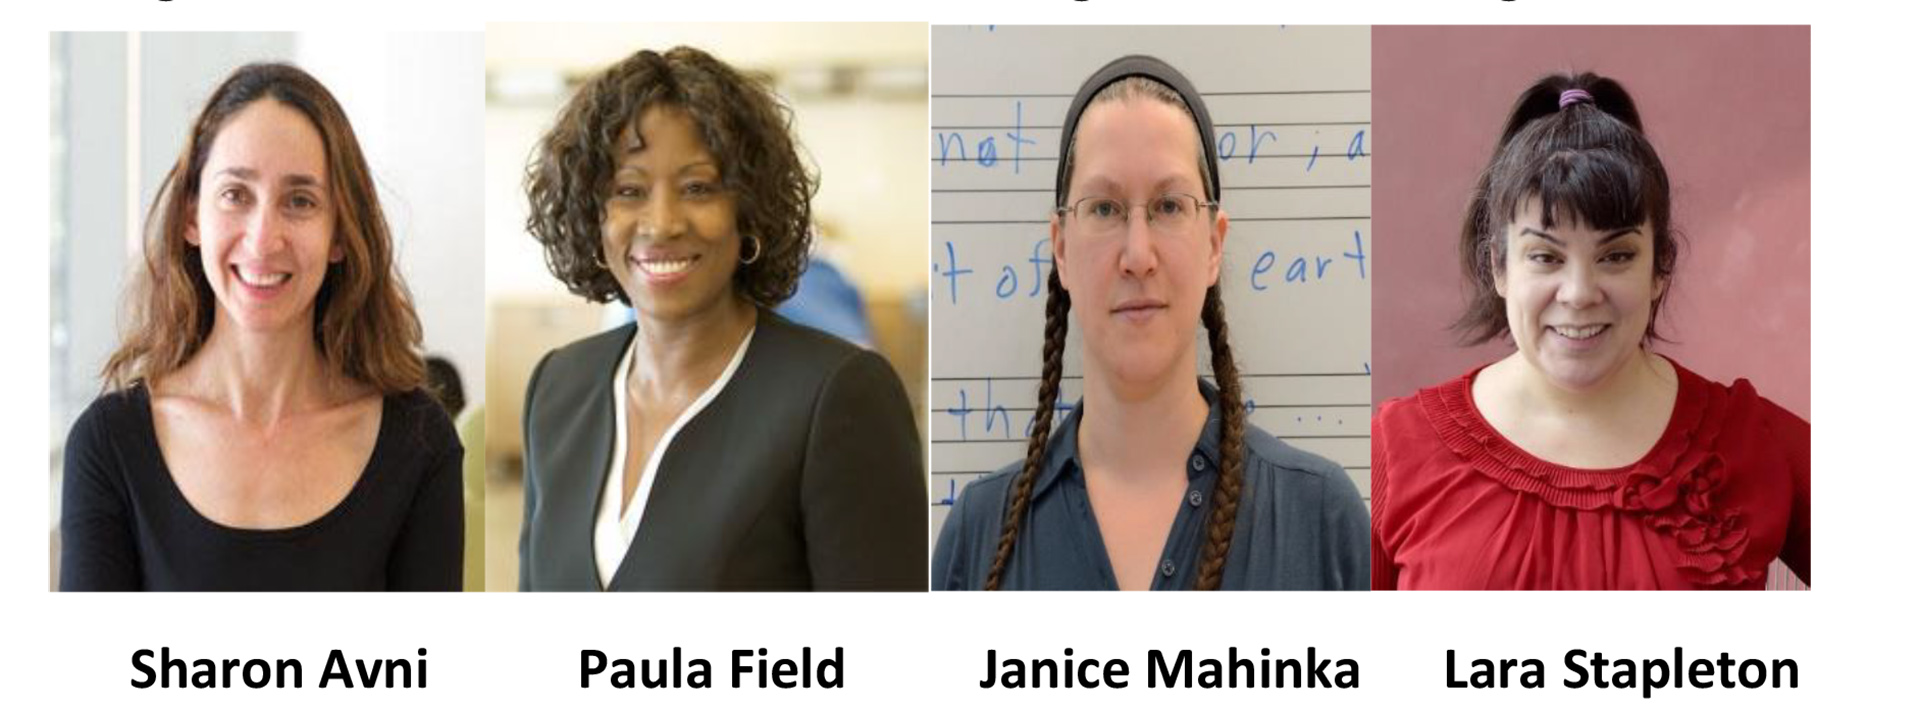 BMCC Distinguished Teaching Awardees for 2018, Sharon Avni, Paula Field, janiece Mahinka and Lara Stapleton